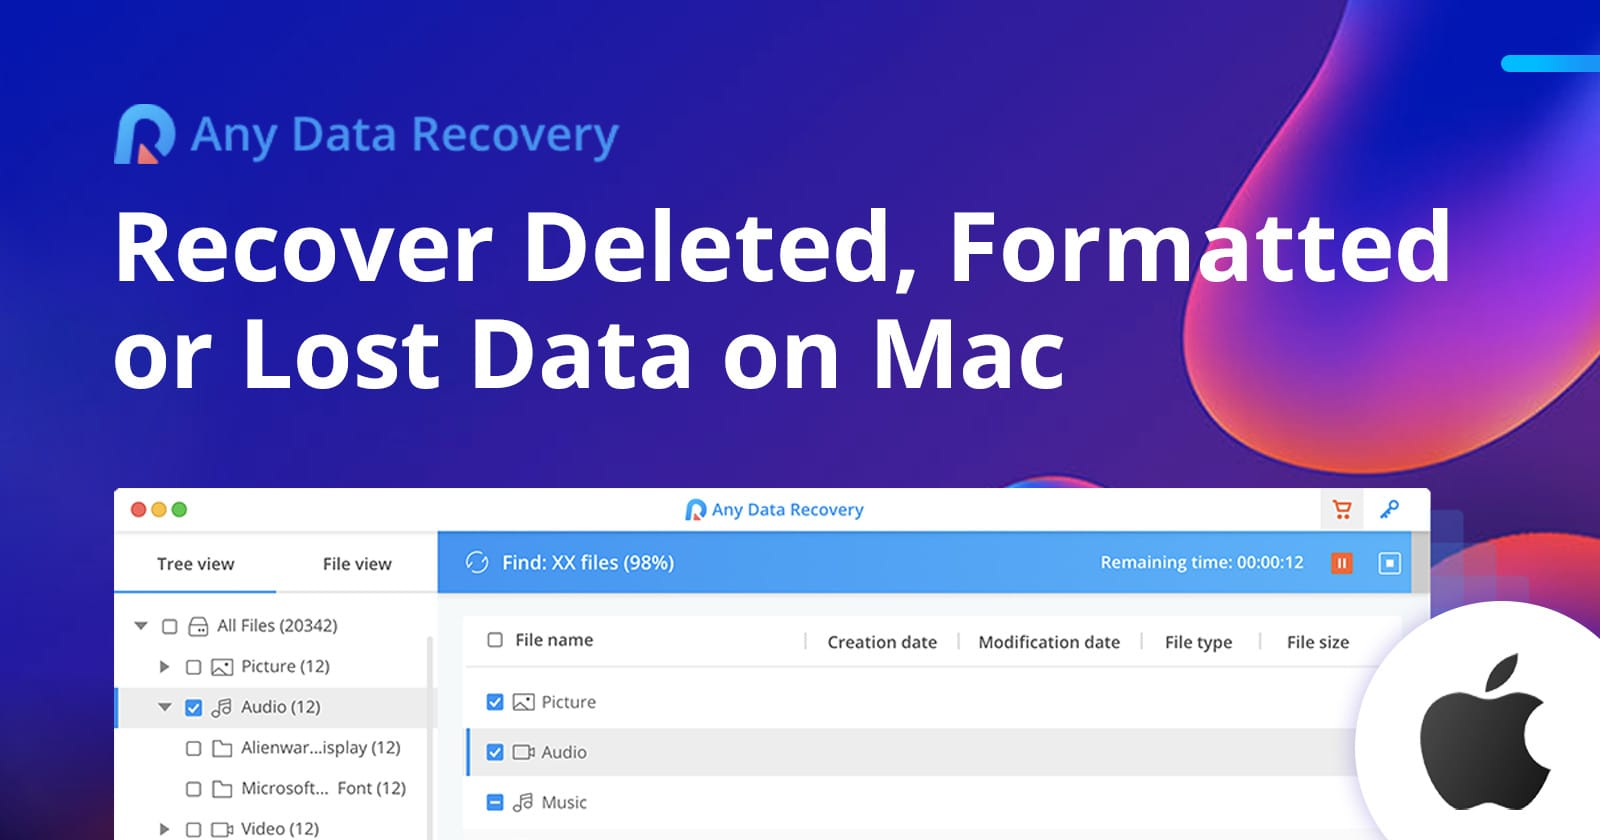 Any Data Recovery for Mac takes a deep dive into damaged or corrupted drives to recover lost files and data.